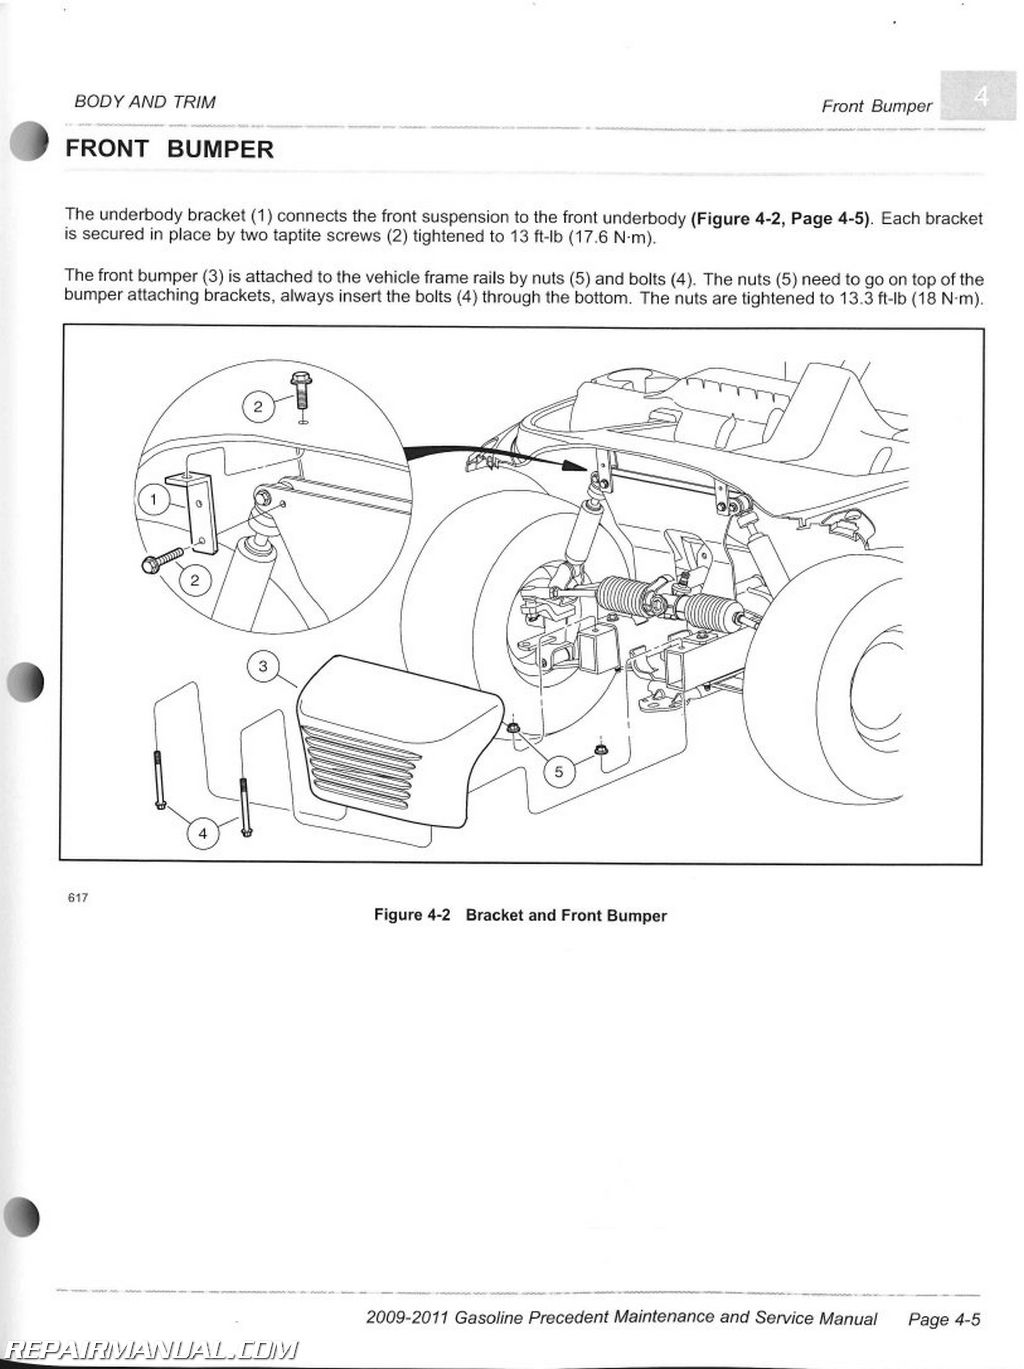 2009 Club Car Precedent Battery Wiring Diagram - Wiring Solutions  Club Car Gas Golf Cart Wiring Diagram on 1986 harley-davidson carburetor diagram, harley davidson golf cart engine diagram, club car solenoid wiring diagram, club car wire diagram, forward and reverse switch diagram, gas club car electrical schematics, 92 club car wiring diagram, 1993 gas club car wiring diagram, 1992 gas club car wiring diagram, club car 36v batteries diagram, 87 club car wiring diagram, 94 club car wiring diagram, 1996 gas club car wiring diagram, club car headlight wiring diagram, electric club car wiring diagram, 01 club car wiring diagram, club car electrical diagram, 93 club car wiring diagram, club car precedent front suspension diagram, club car schematic diagram,